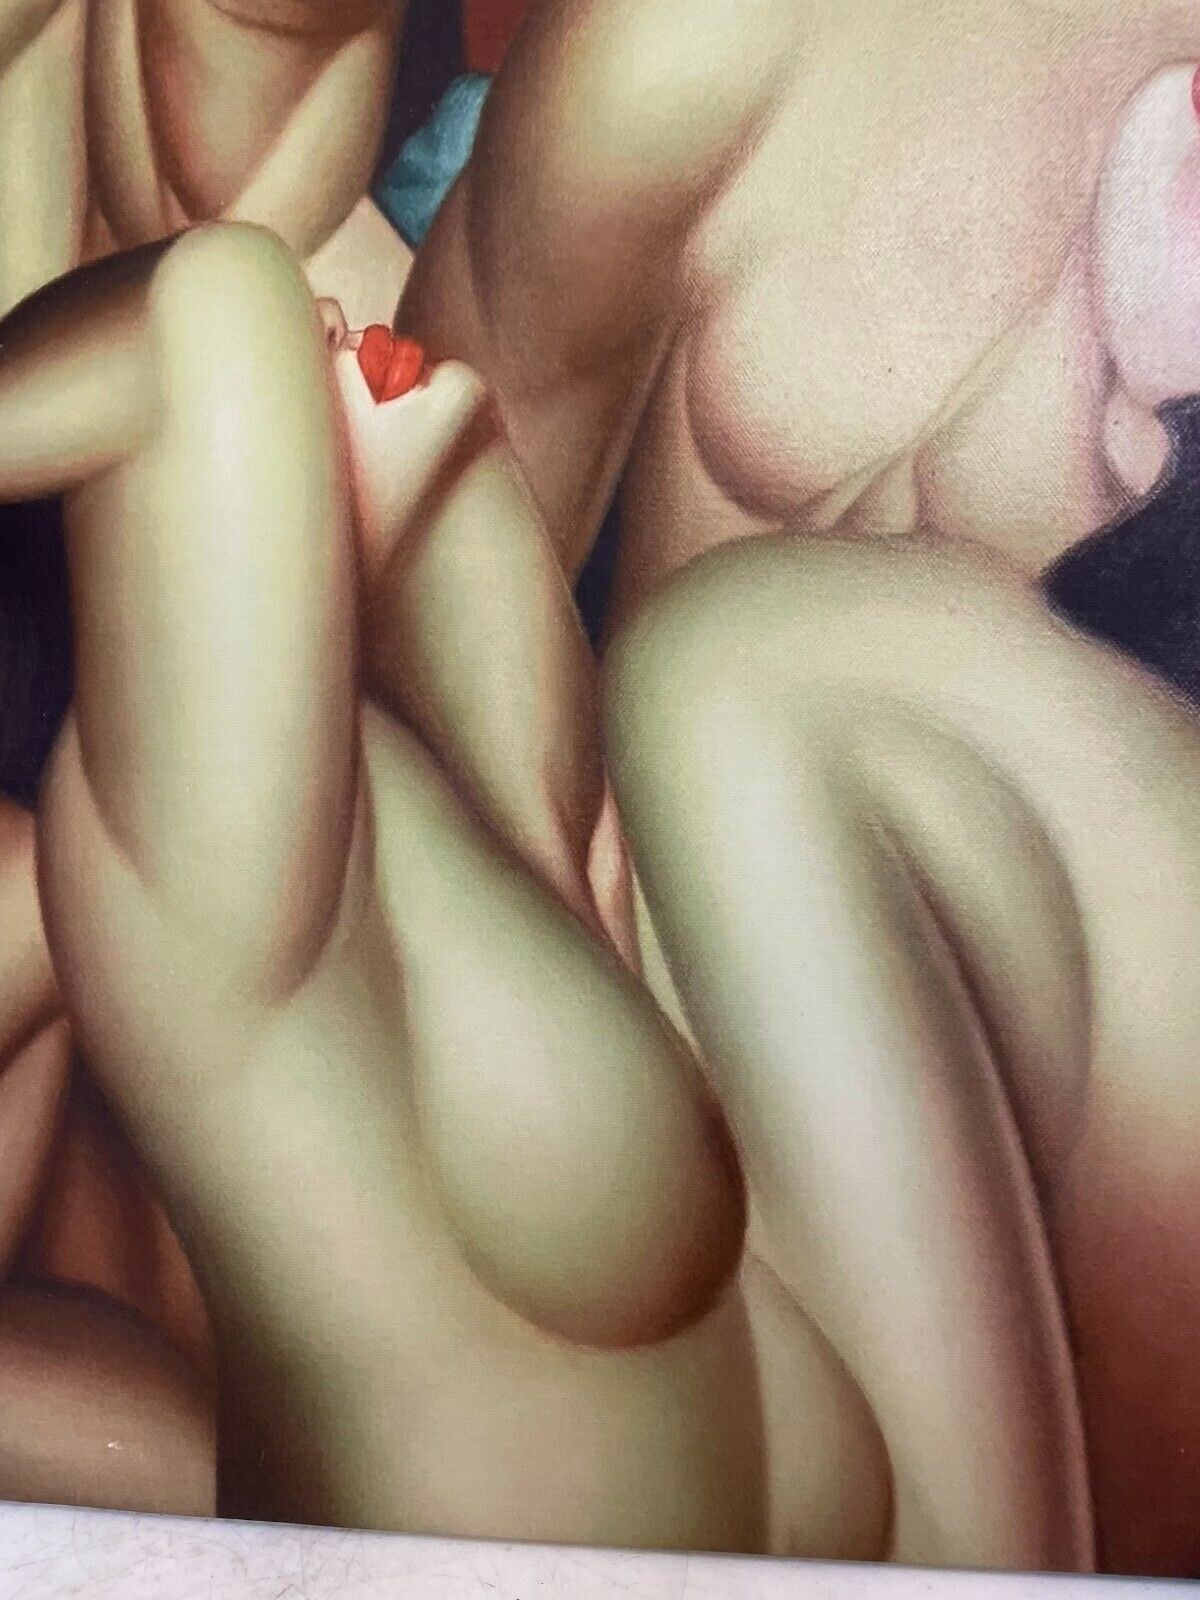 Giclee On Canvas - Four Nude Woman - $200.00